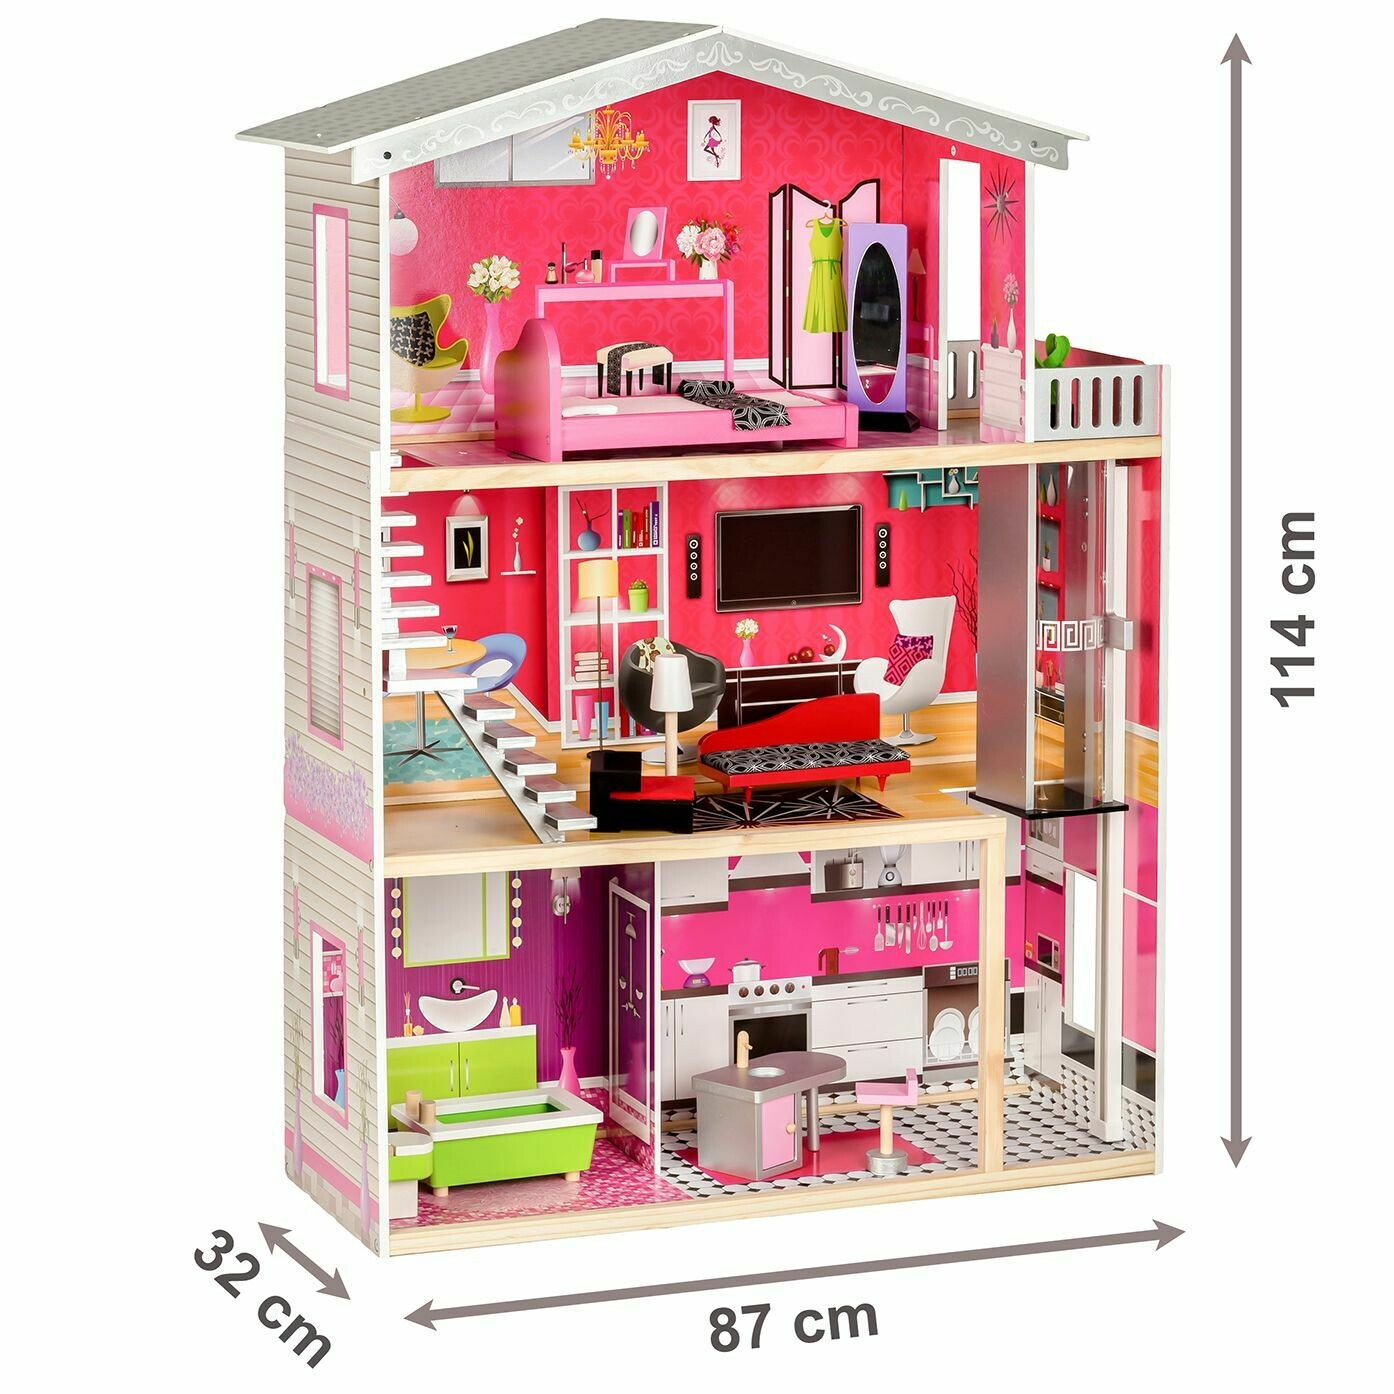 RED WOODEN DOLL HOUSE